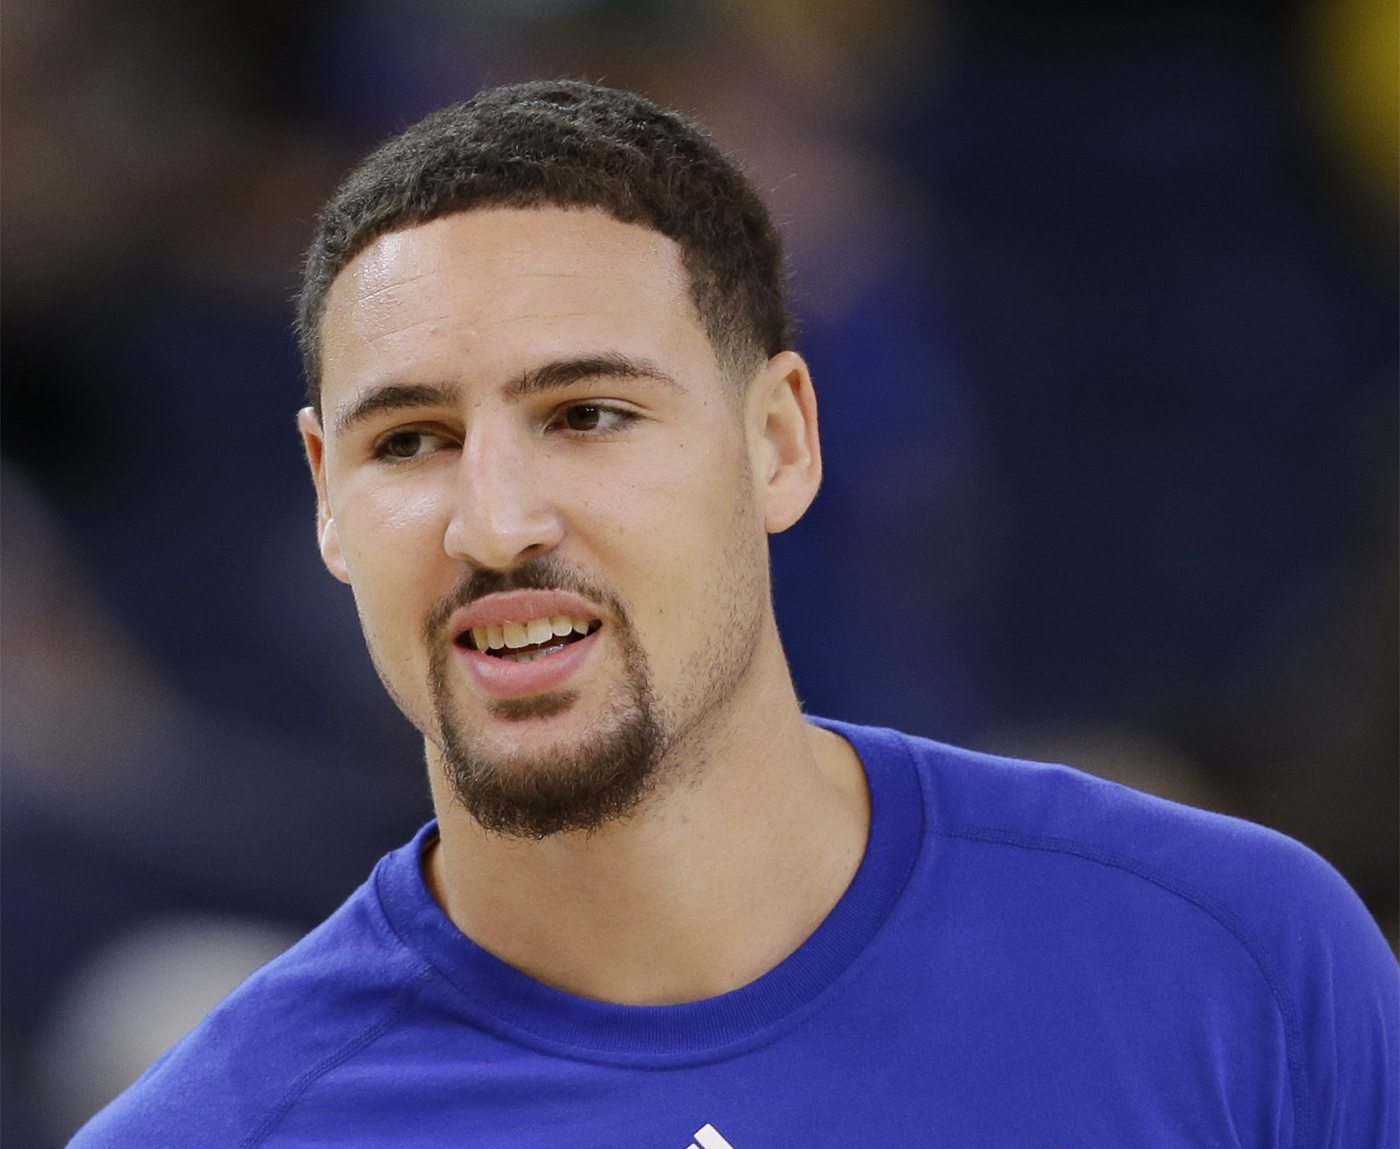 Klay Thompson has not been in top form, perhaps because of a back injury that has been nagging him for weeks. (AP Photo/Marcio Jose Sanchez)